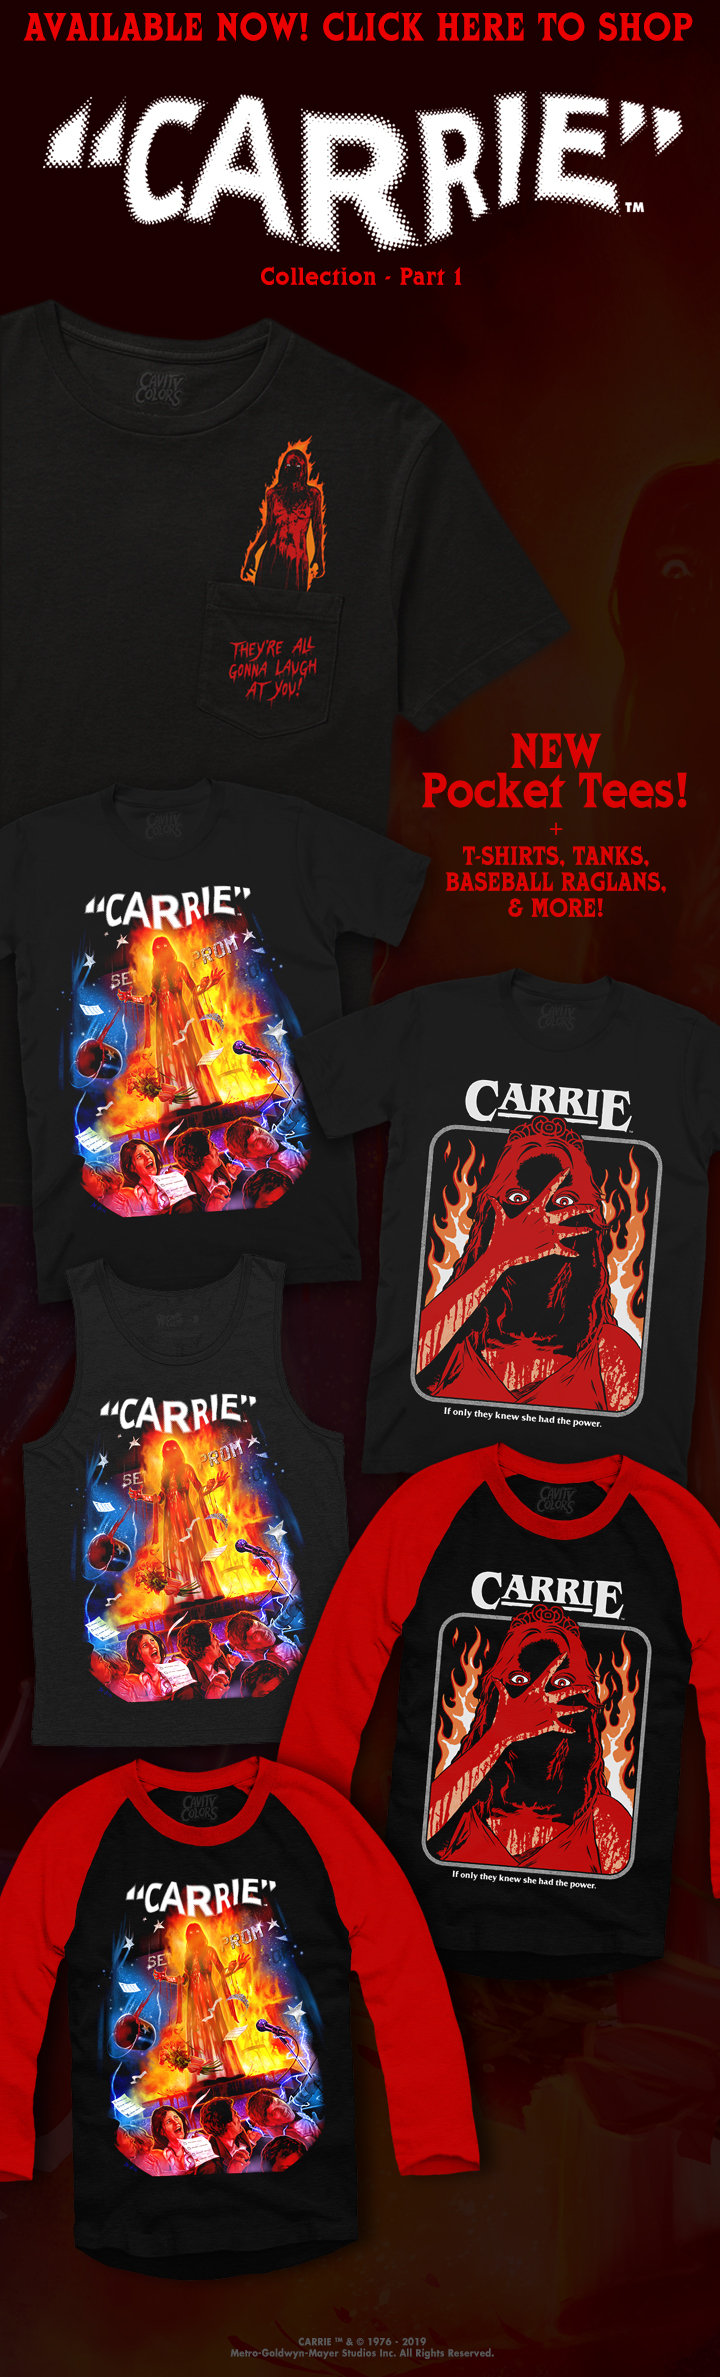 CARRIE Collection: Part 1 Now Available from Cavity Colors